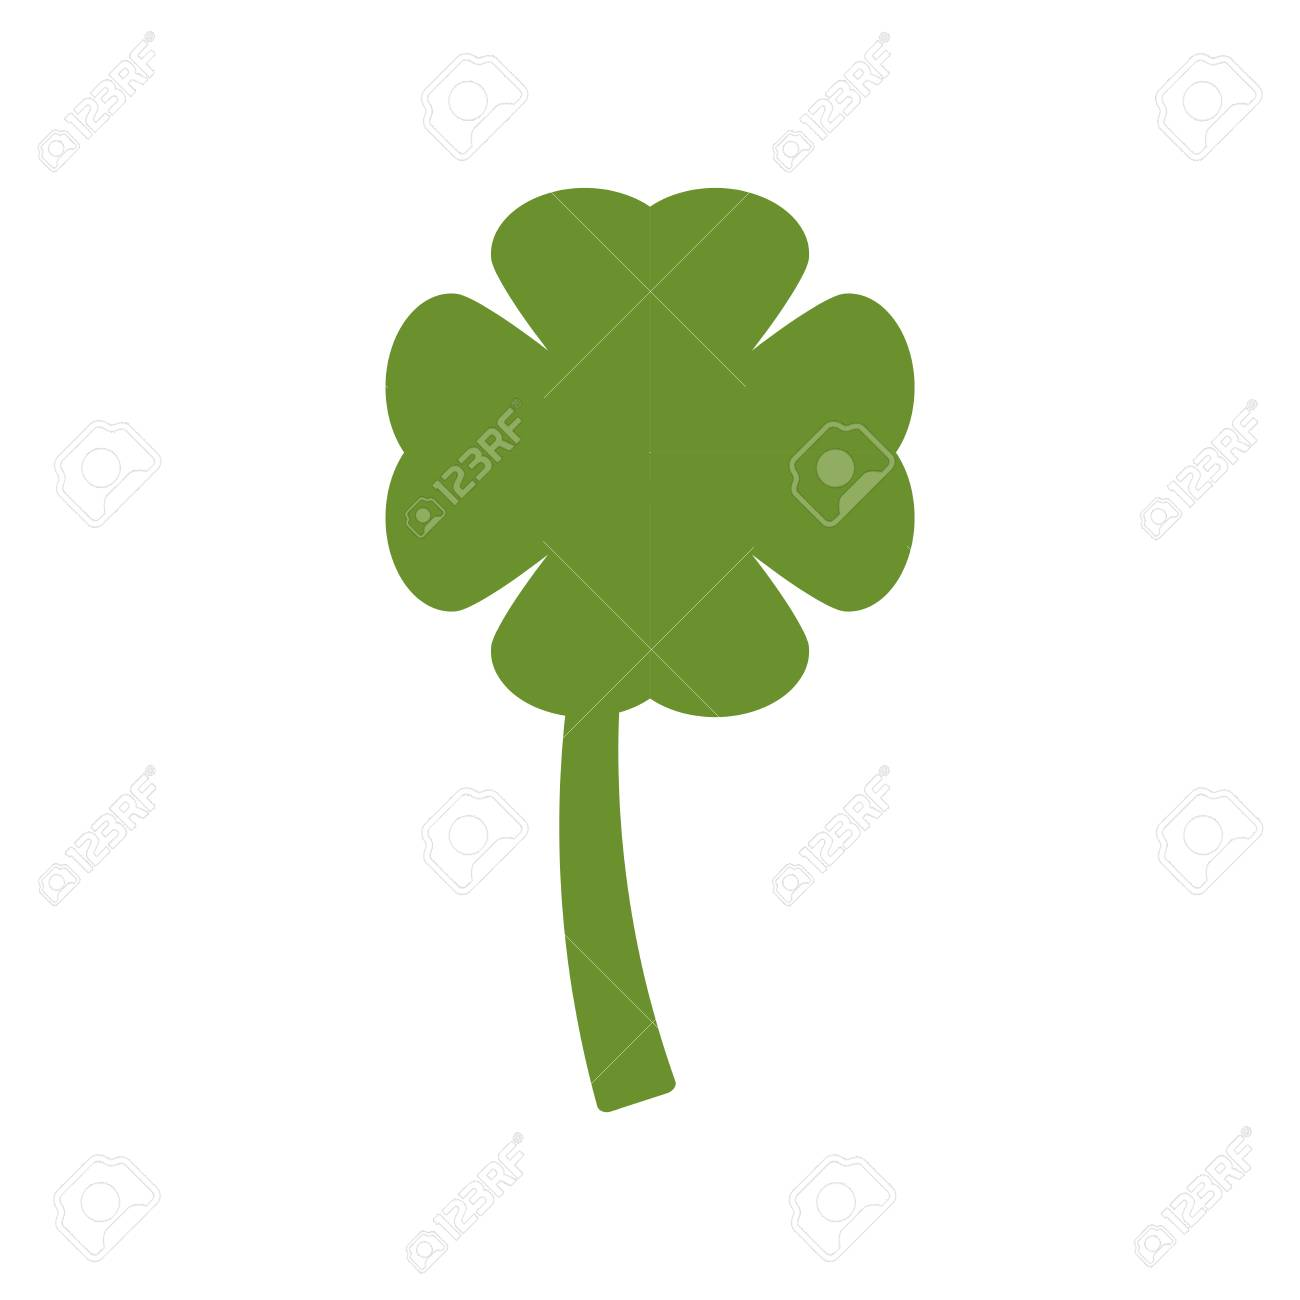 clover on white background abstract geometric sign pattern